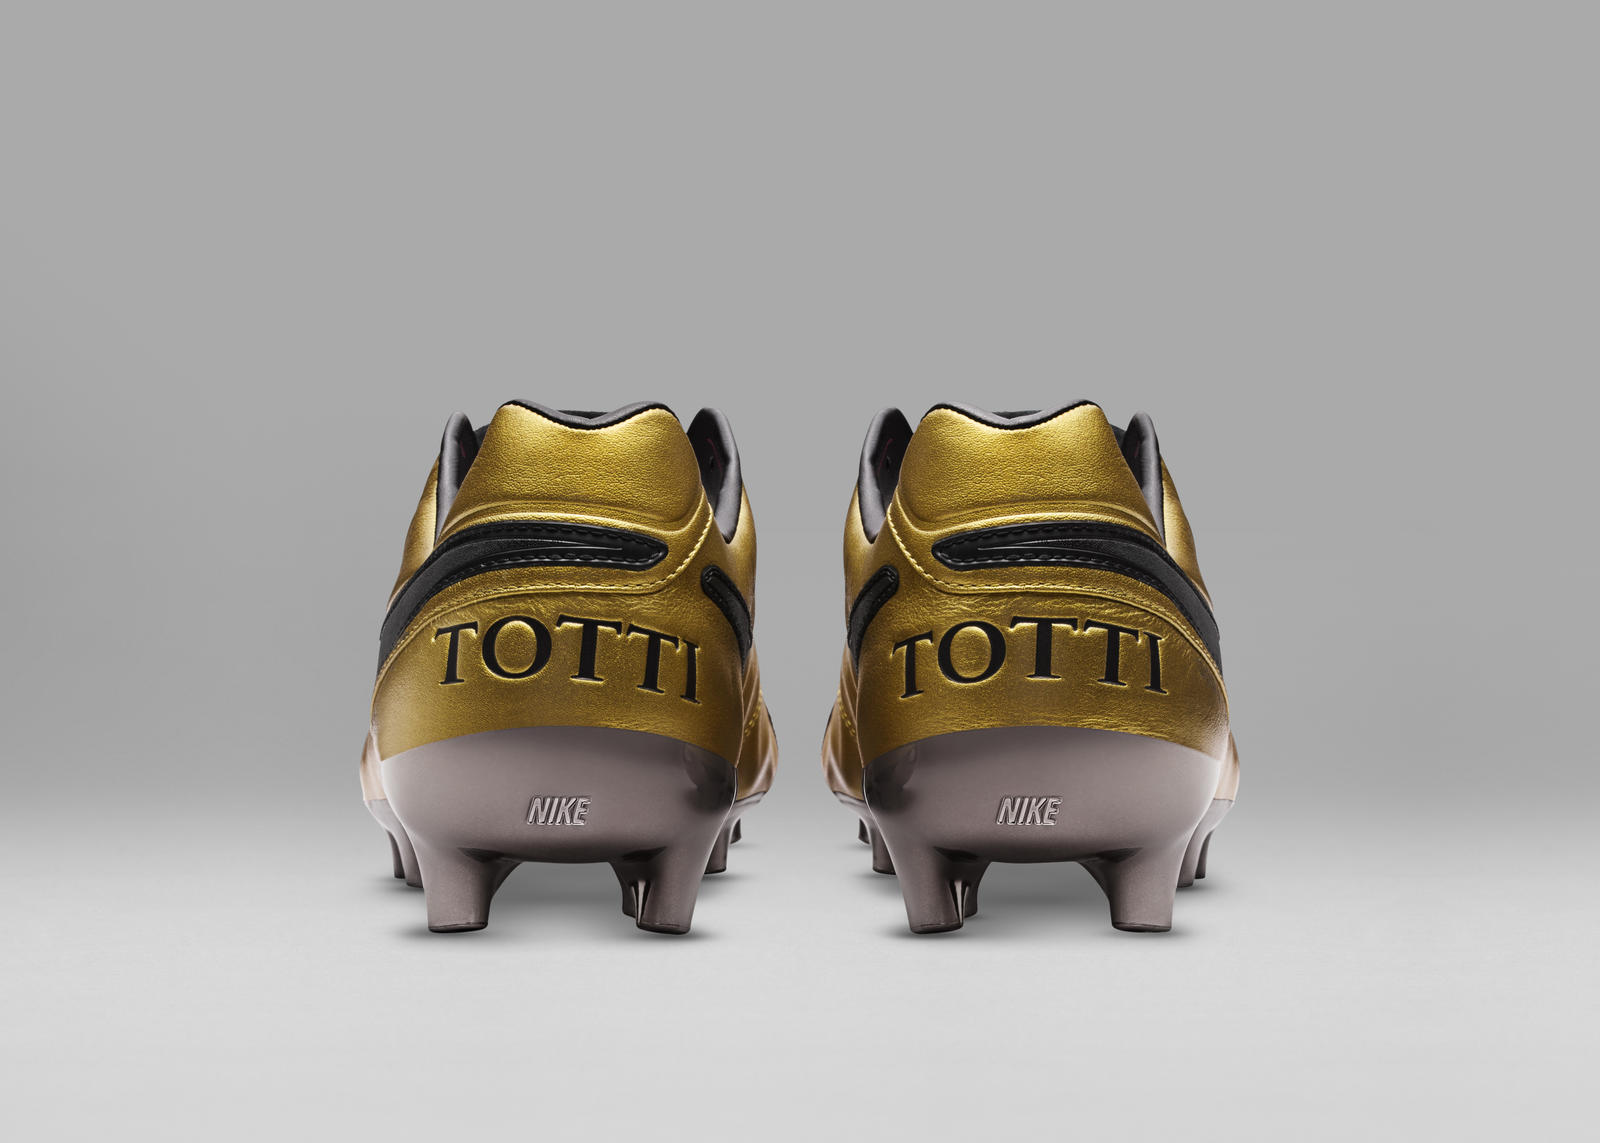 outlet store 14b0b c0a29 Limited Edition Tiempo Totti x Roma Boots Celebrate Totti's ...